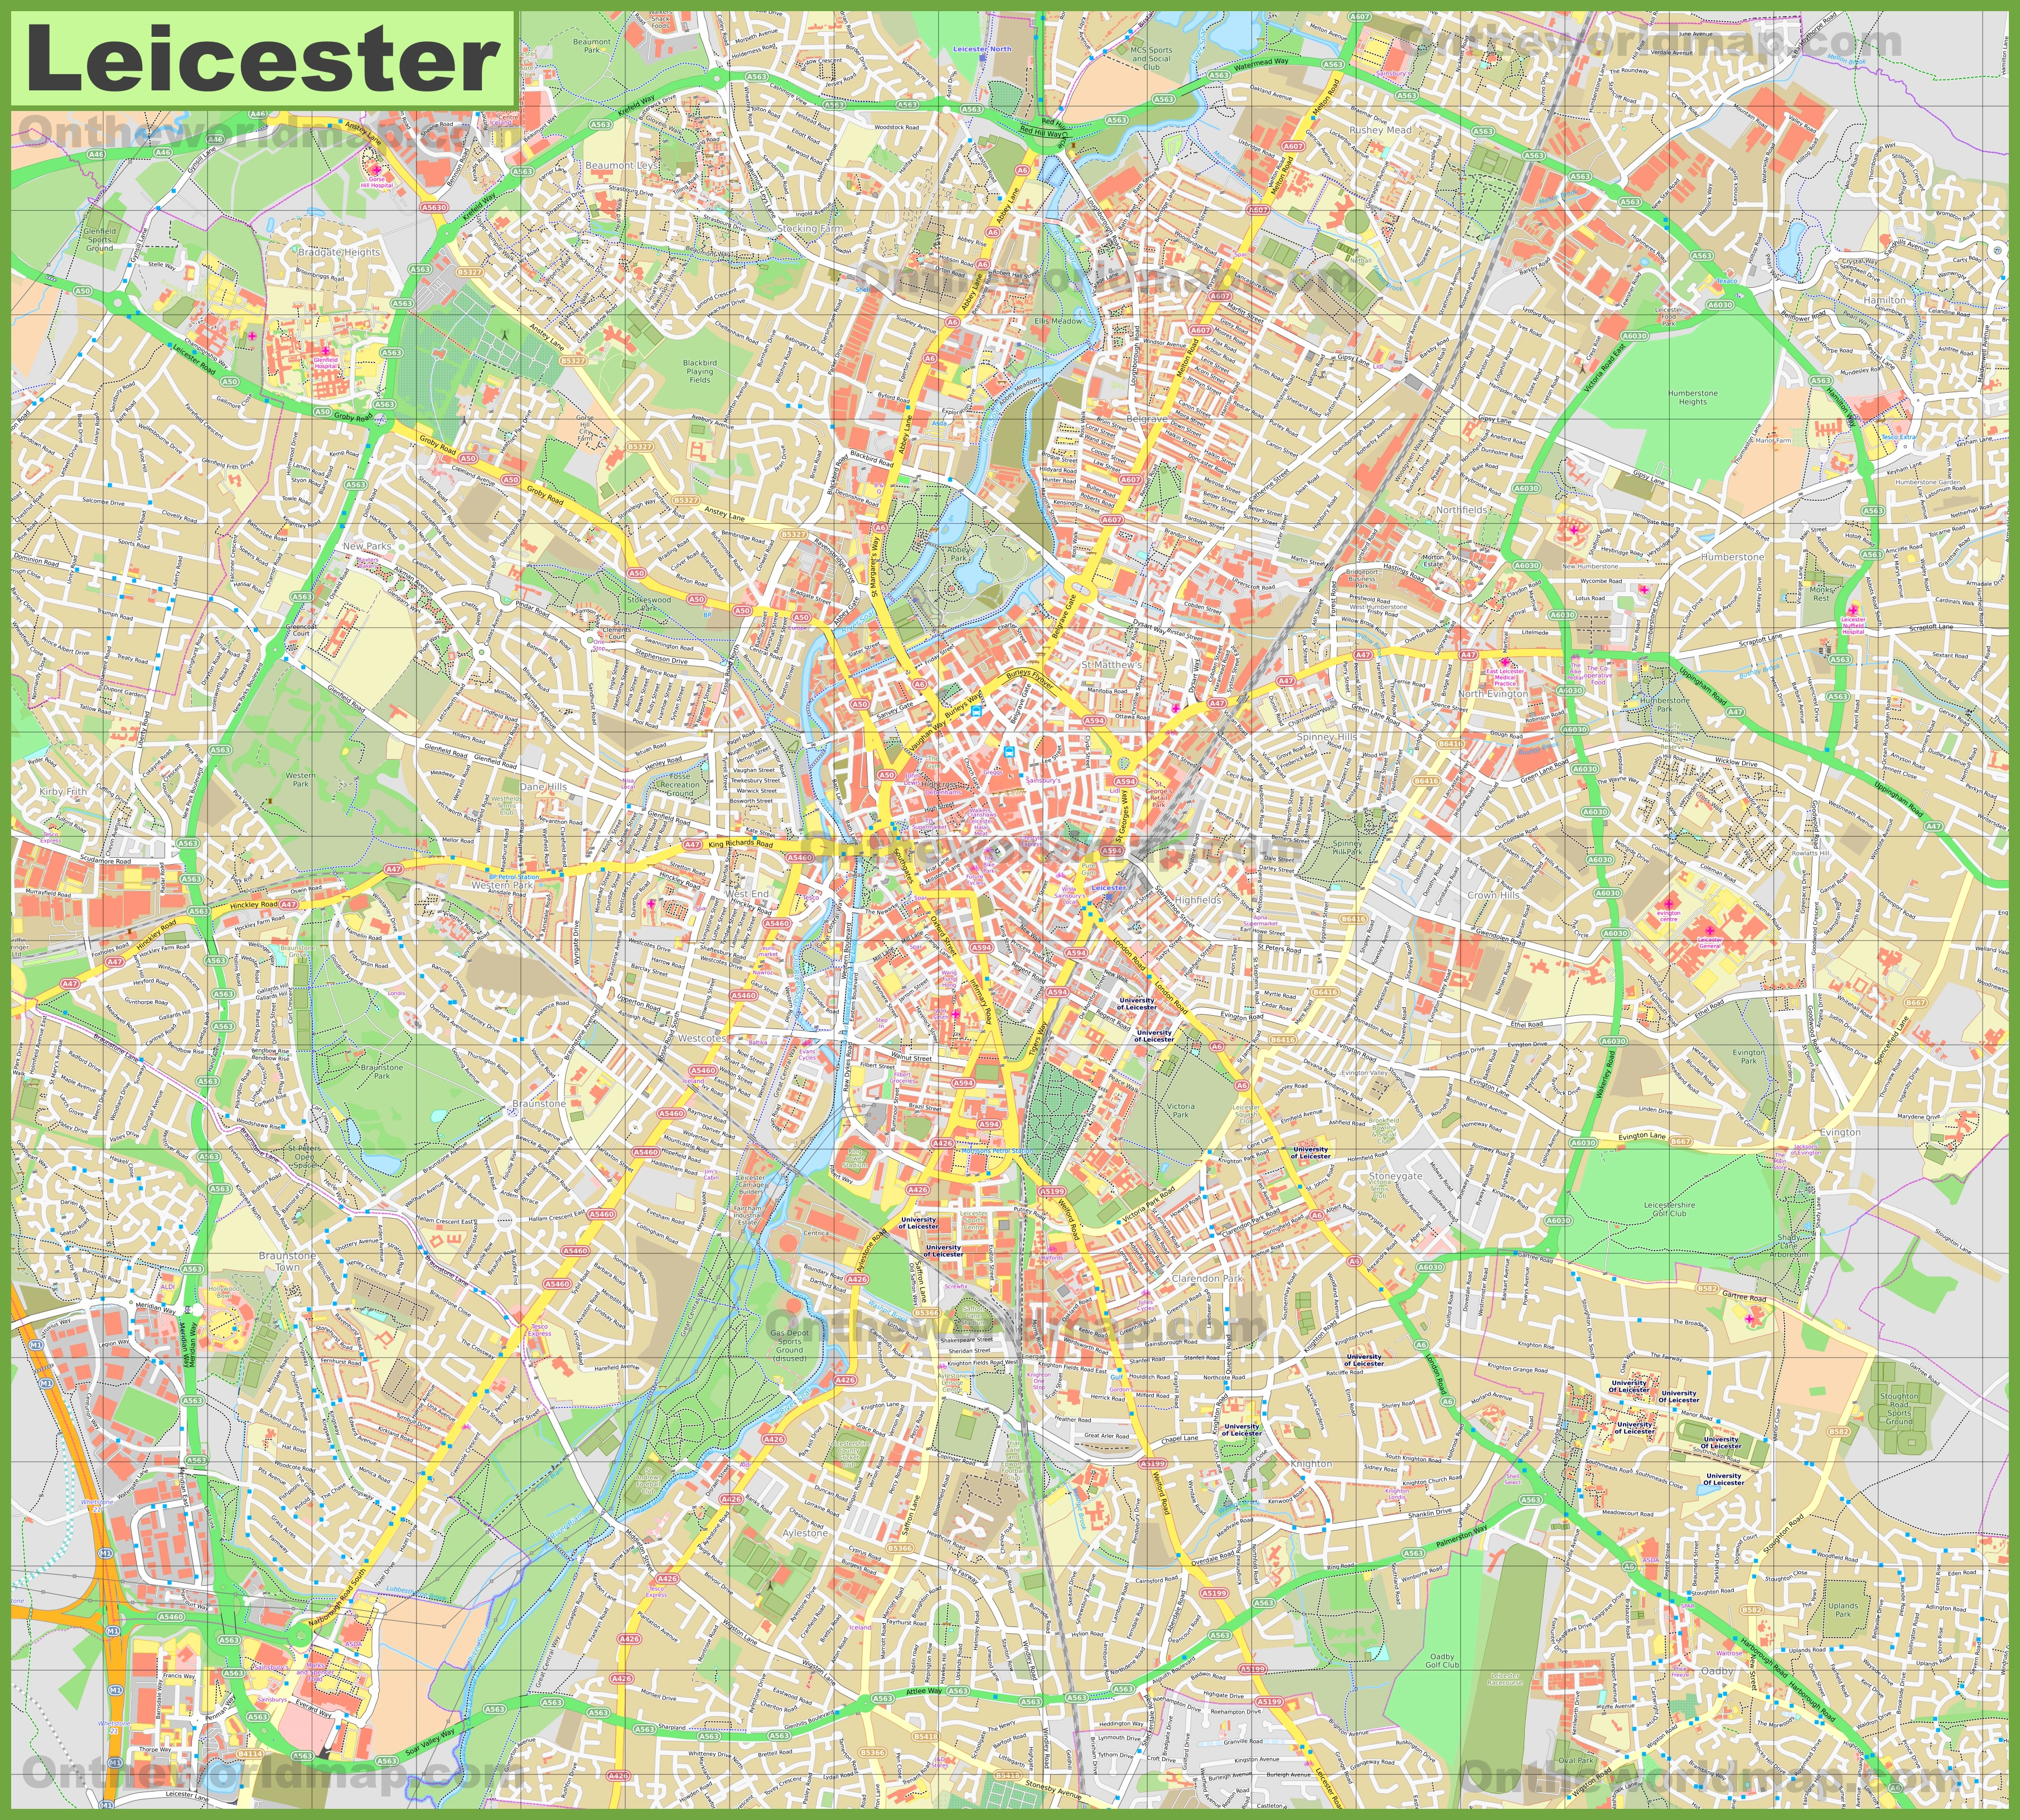 Detailed map of Leicester